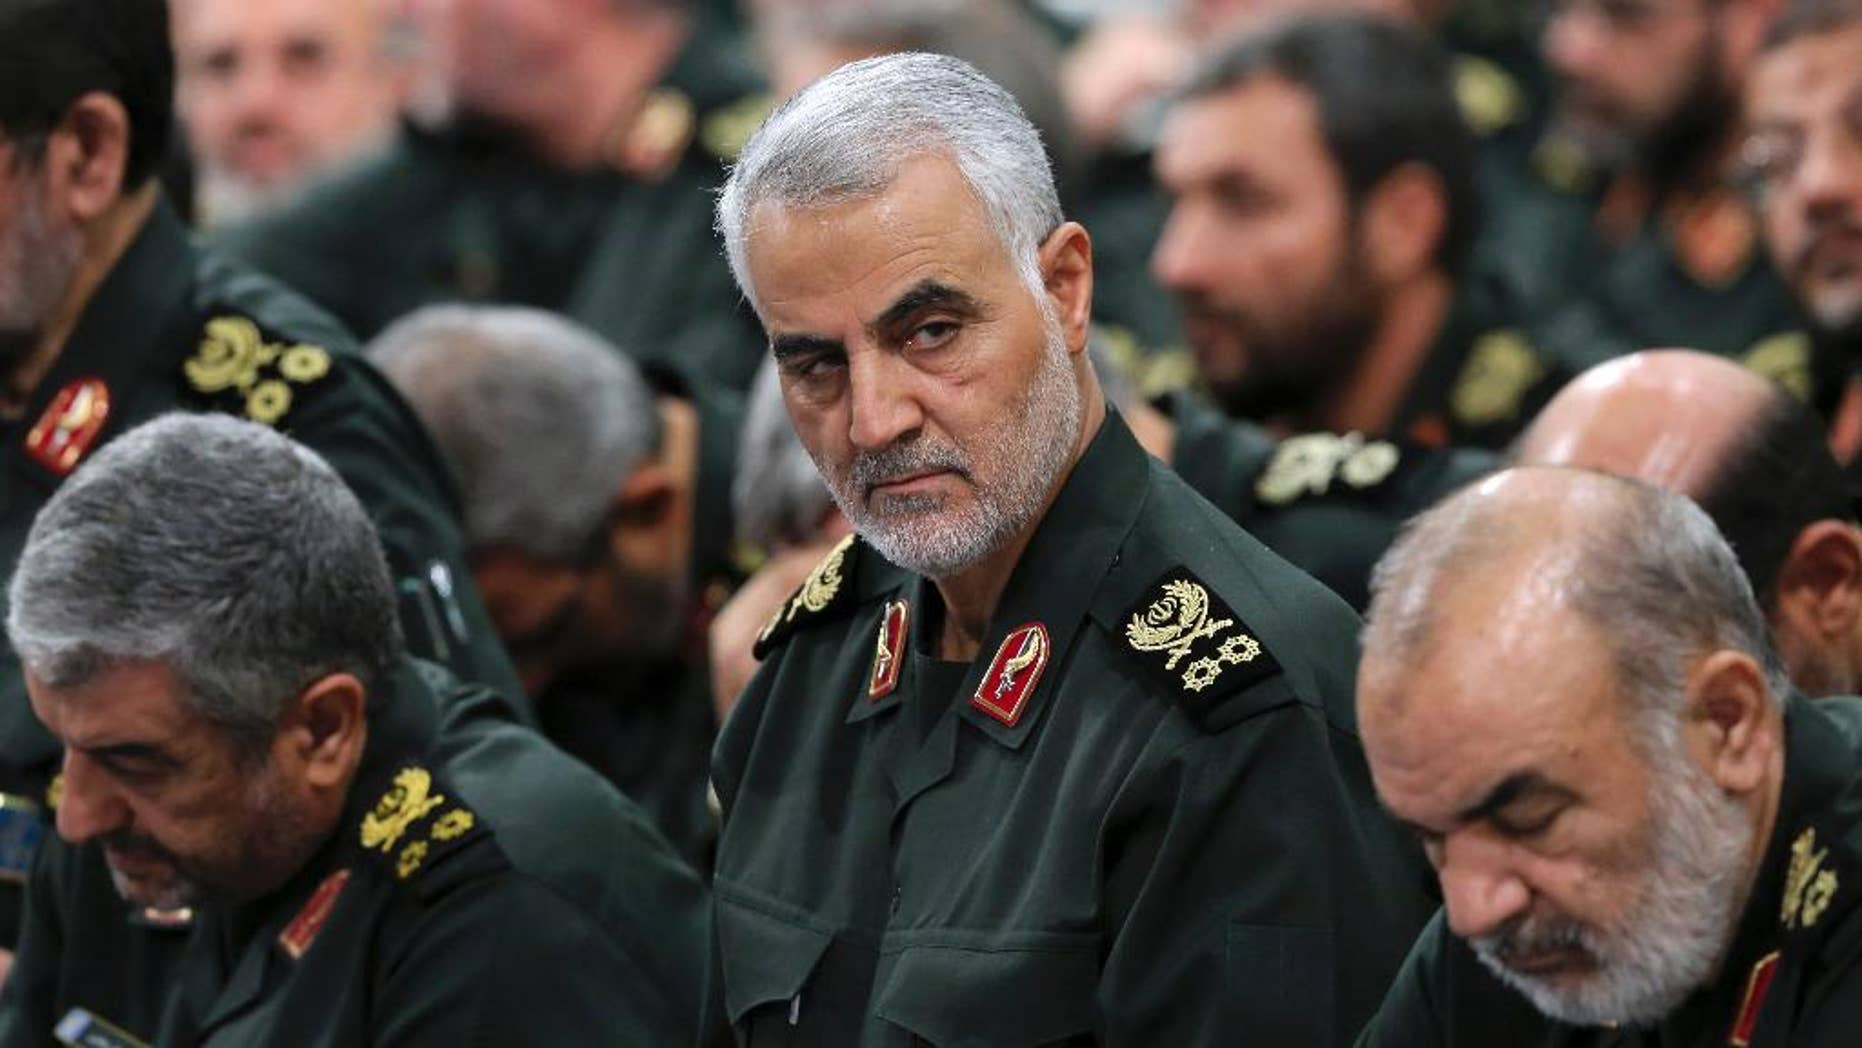 Westlake Legal Group 20ee97f1c7f248f28791fb93a9f40df9 The master behind the mask: who is Iran's most feared and powerful military commander? Hollie McKay fox-news/world/terrorism fox-news/world/conflicts/iran fox-news/world fox-news/us/terror/counter-terrorism fox news fnc/world fnc article 79e4224c-fb79-5317-9c67-33ef669ac755